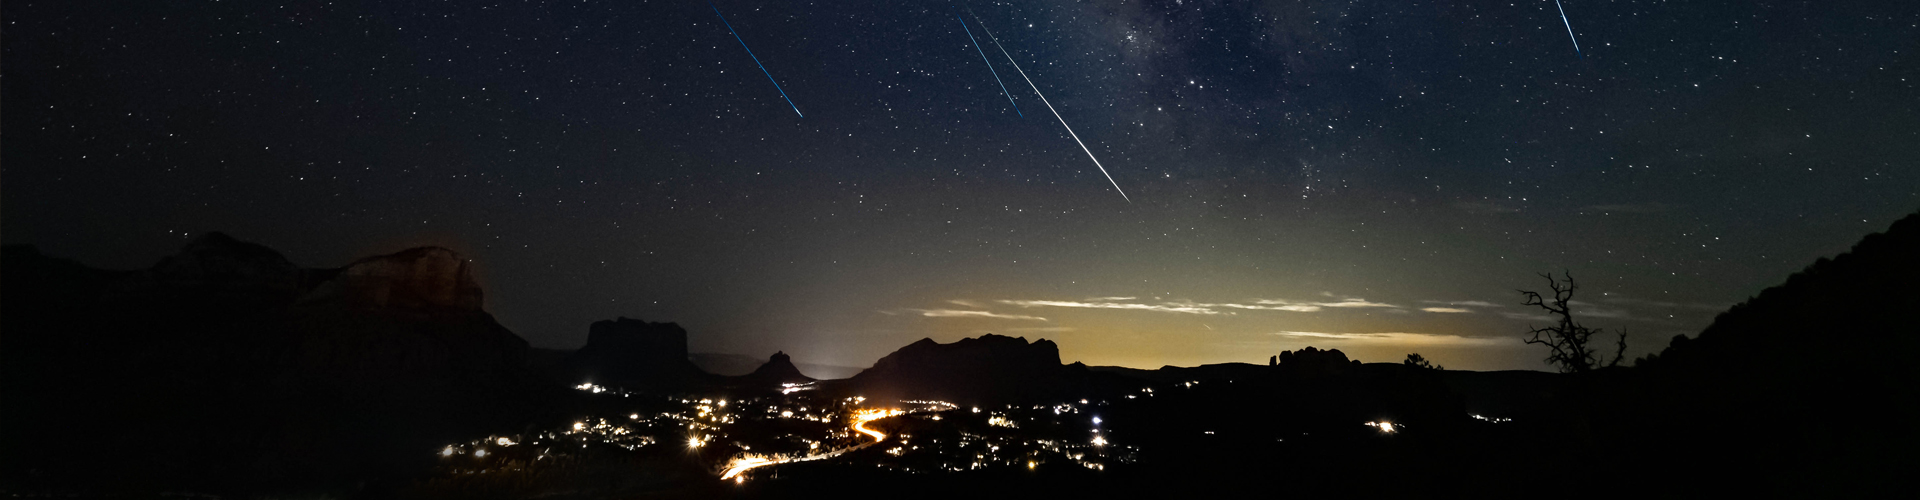 Silhouette of town at night with shooting stars in the sky